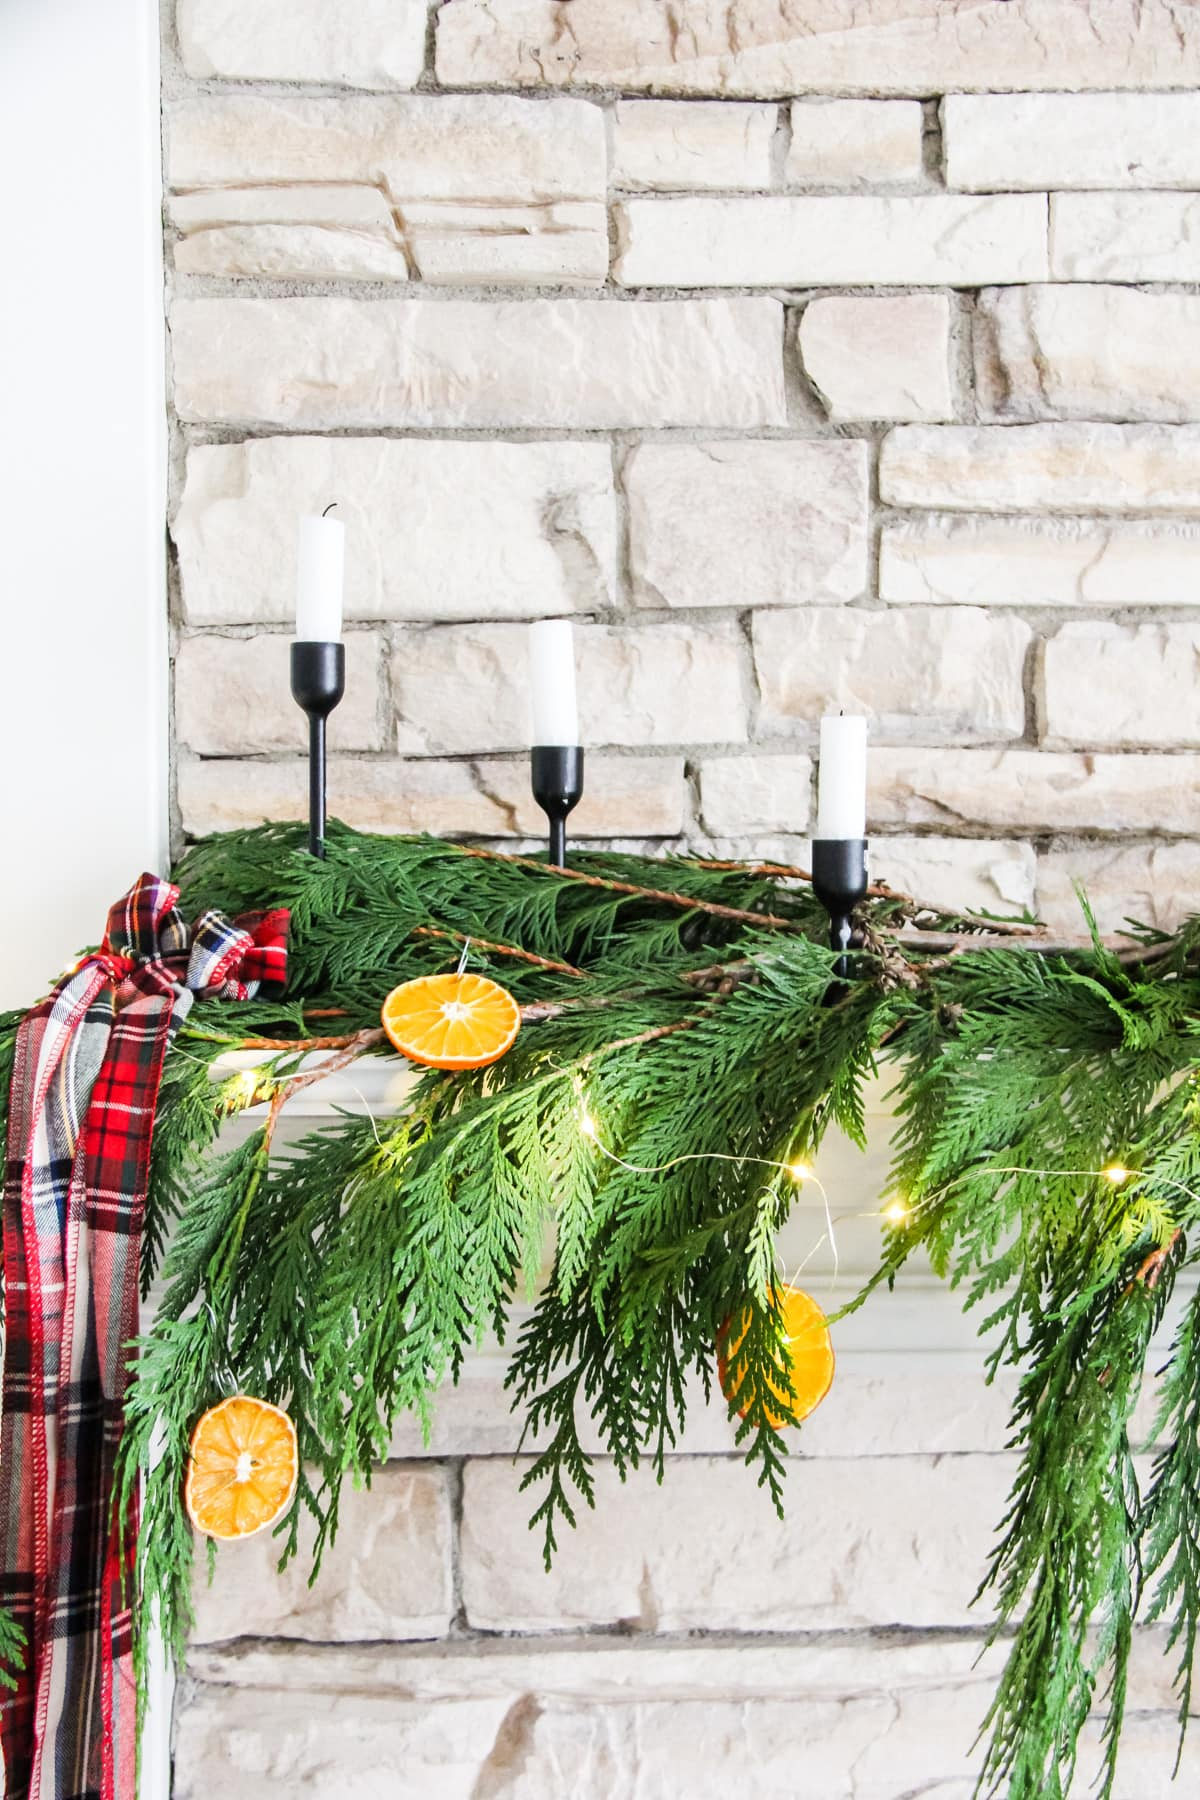 a close up view of half of a fireplace mantel decorated with fresh cedar boughs, orange slice ornaments, string fairy lights and plaid ribbon